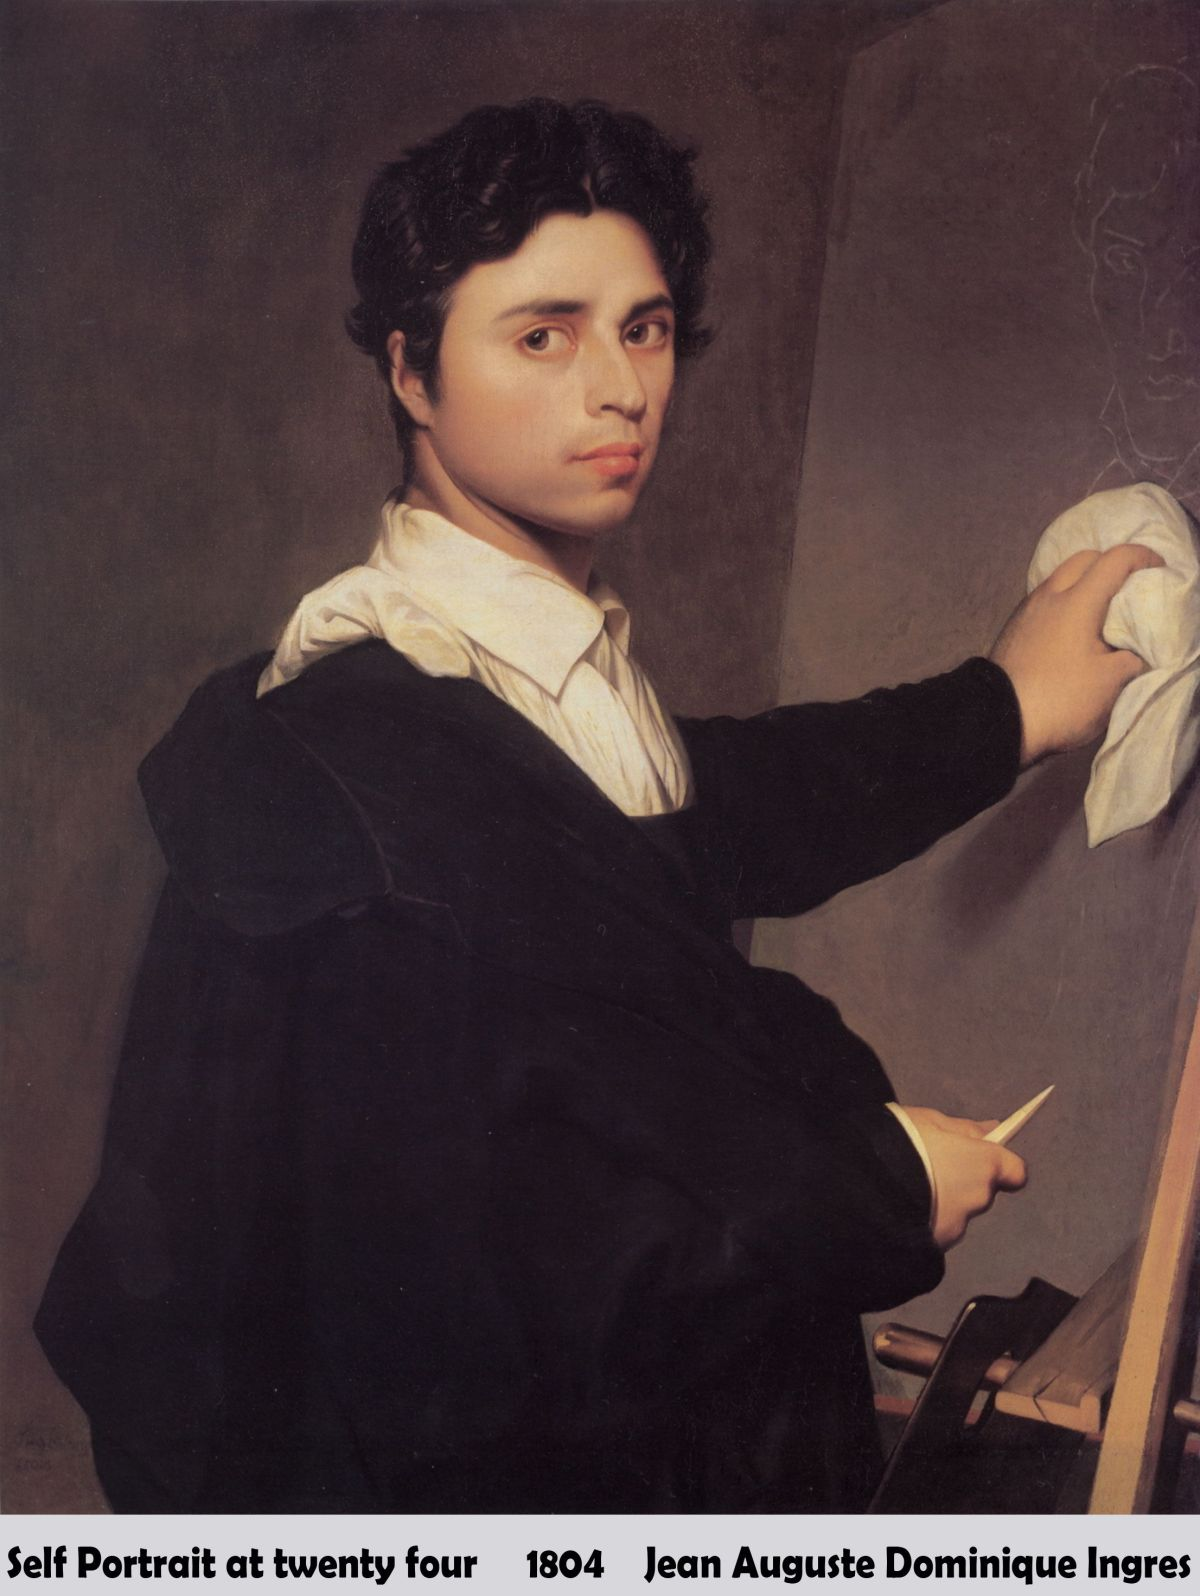 Self Portrait at twenty four by Jean Auguste Dominique Ingres-Portrait Painting